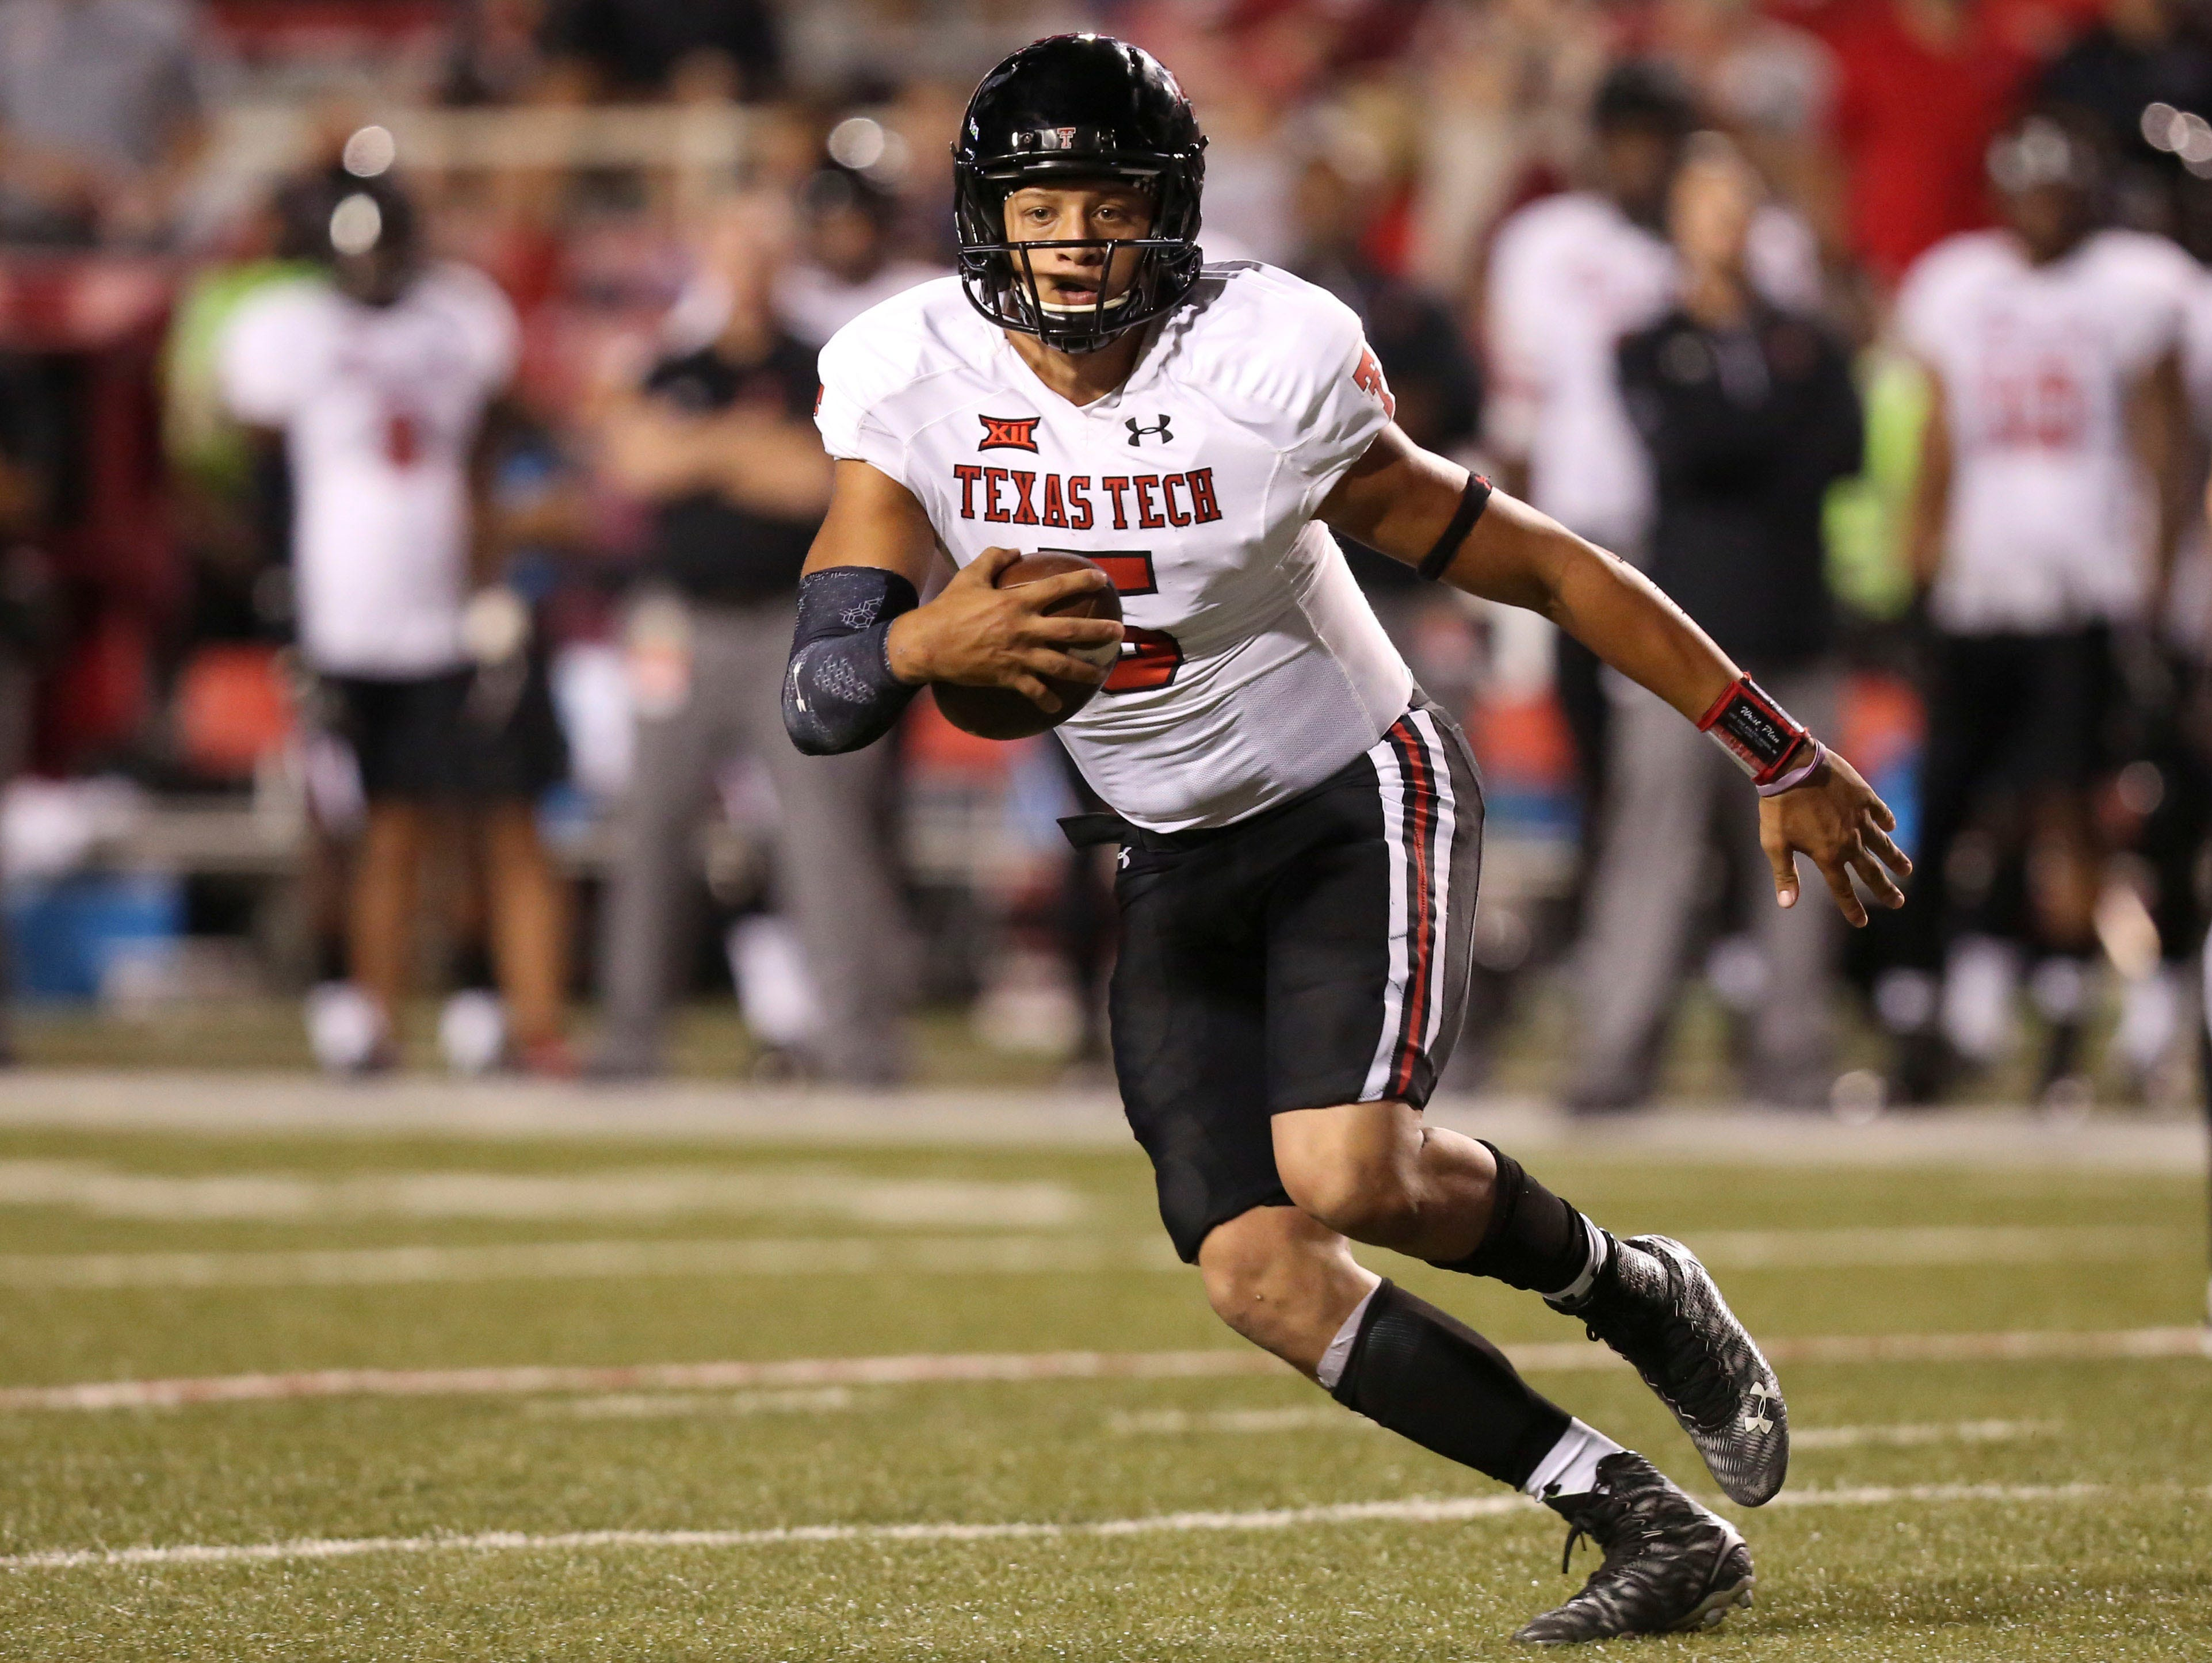 Texas Tech Red Raiders quarterback Patrick Mahomes finished 26-of-30 passing for 243 yards and a score, and he also rushed for 58 yards and a pair of touchdowns.